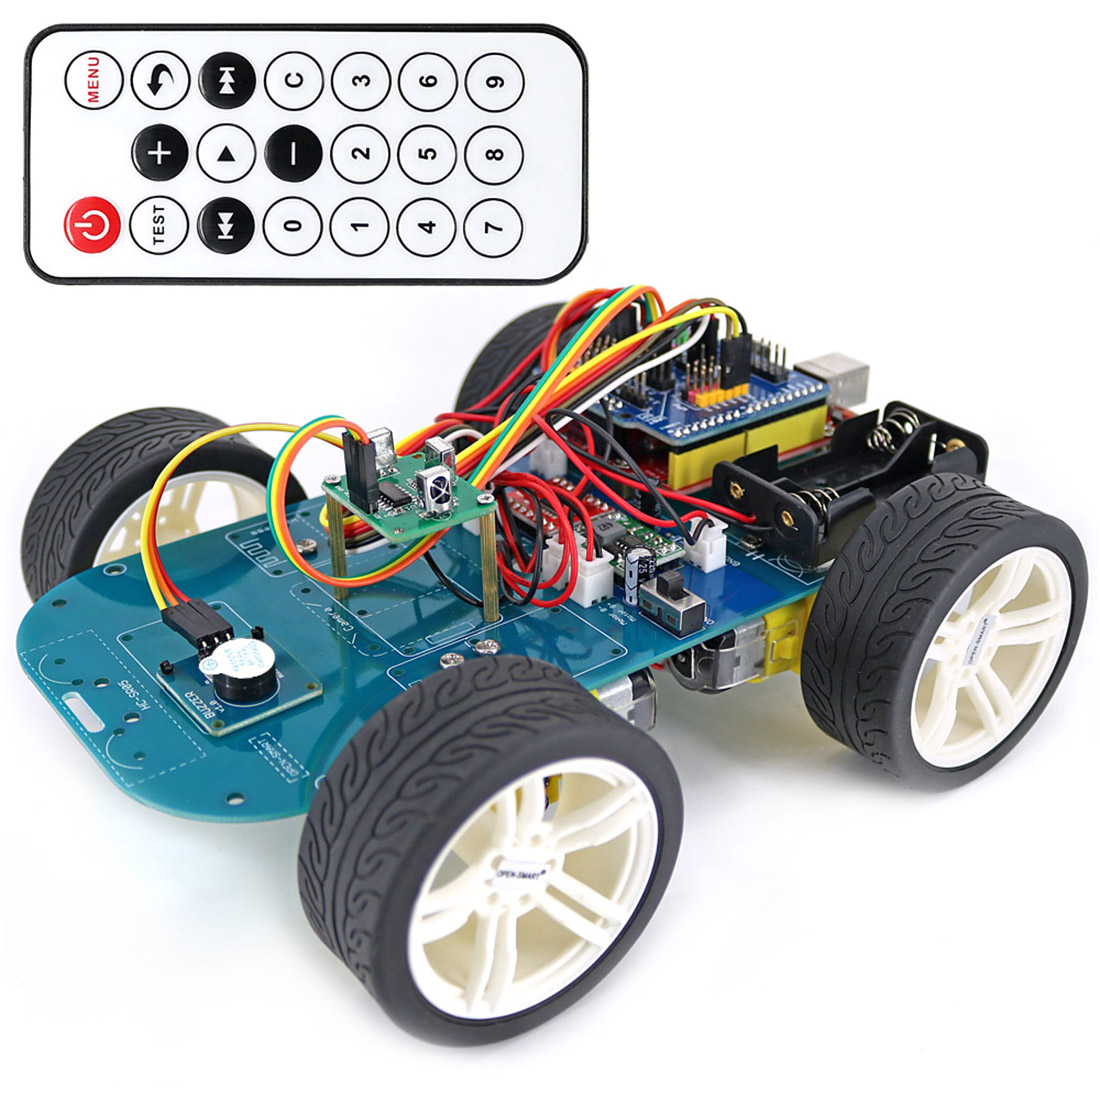 4WD Wireless IR Remote Control Smart Car Kit With Tutorial For Arduino R3 Nano